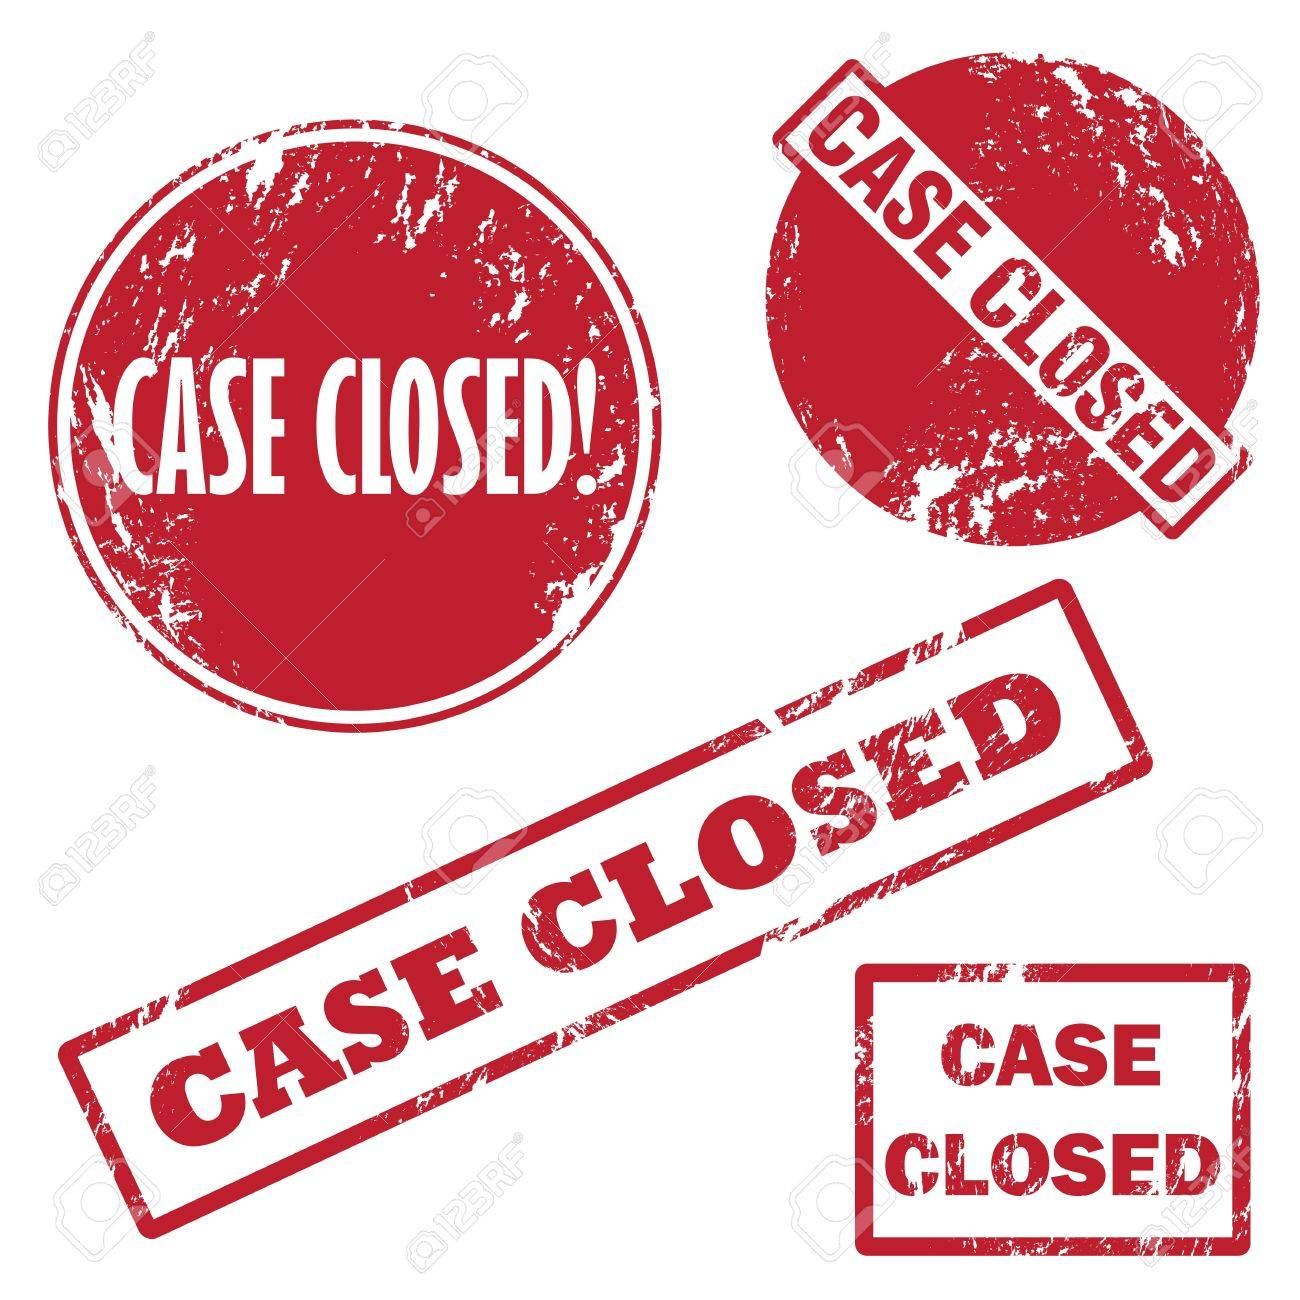 Case closed rubber stamp Stock Vector - 17986730